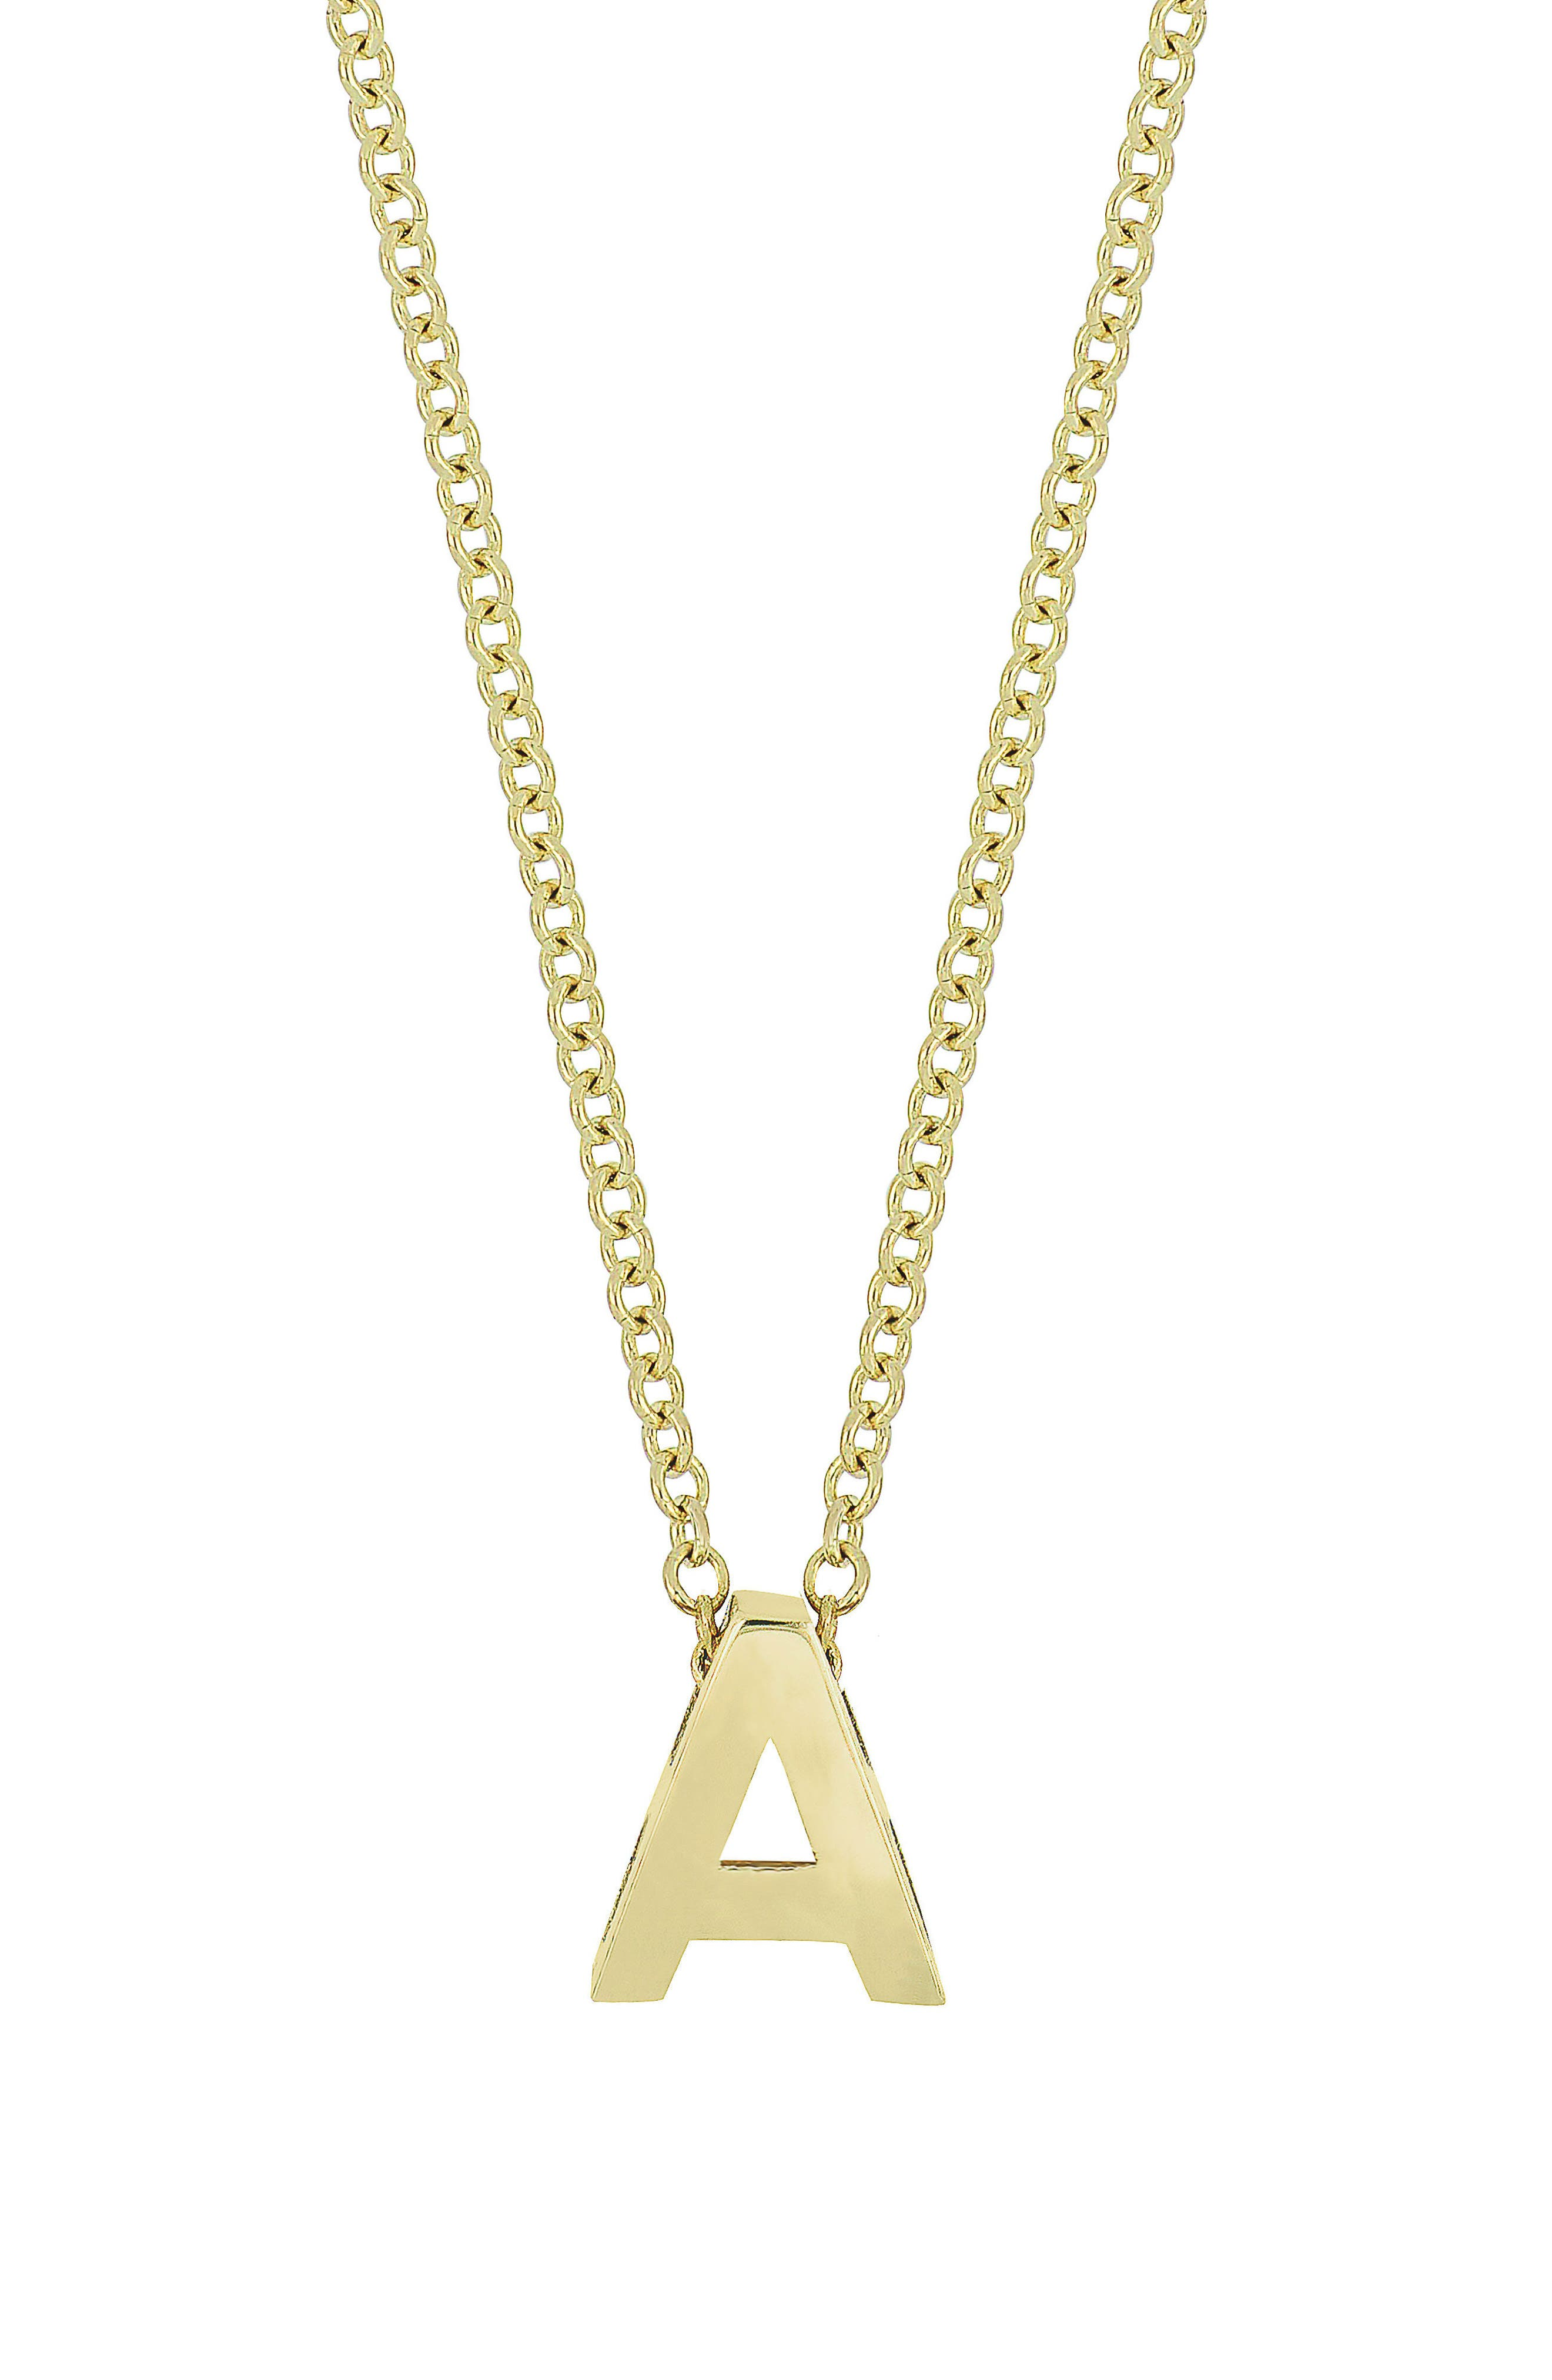 Initial Pendant Necklace,                             Main thumbnail 1, color,                             YELLOW GOLD- A